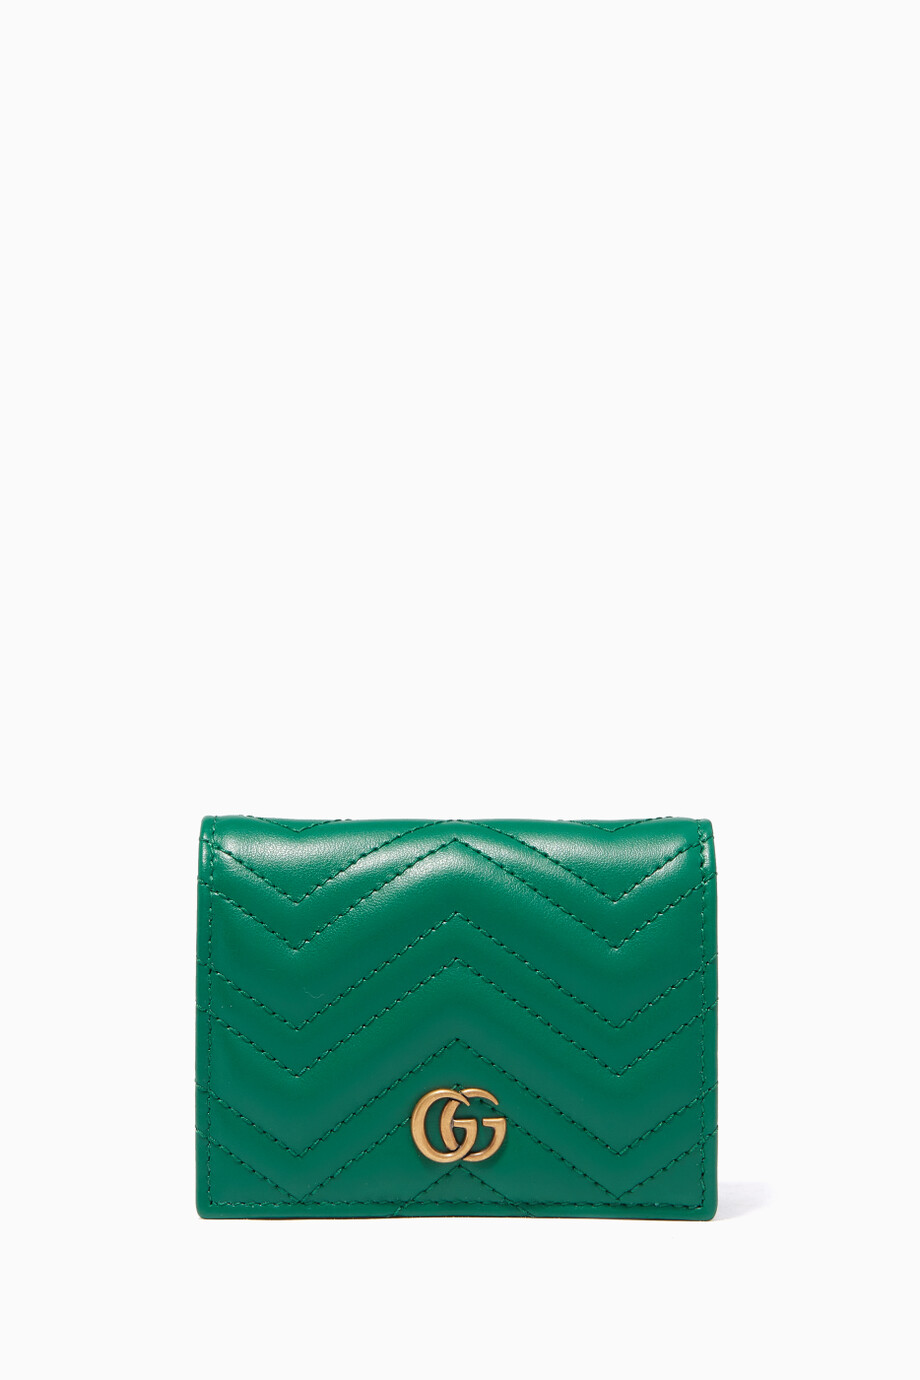 8d7ed26cd42 Shop Gucci Green Green GG Marmont Matelassé Wallet for Women ...